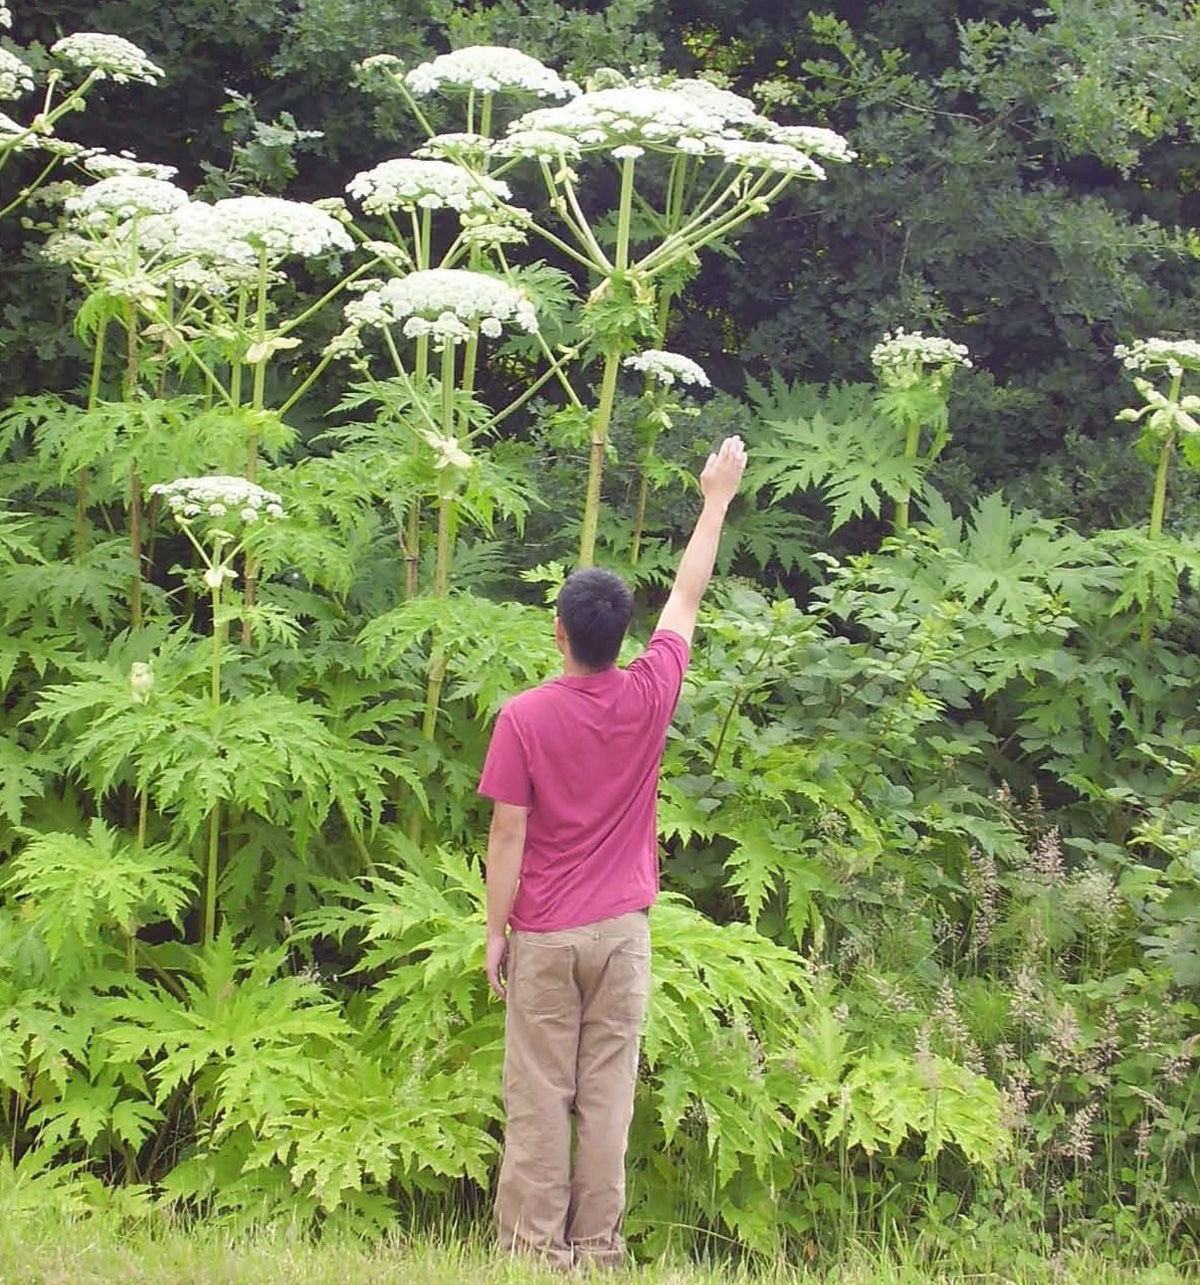 Giant Hogweed - the Unfriendly Giant